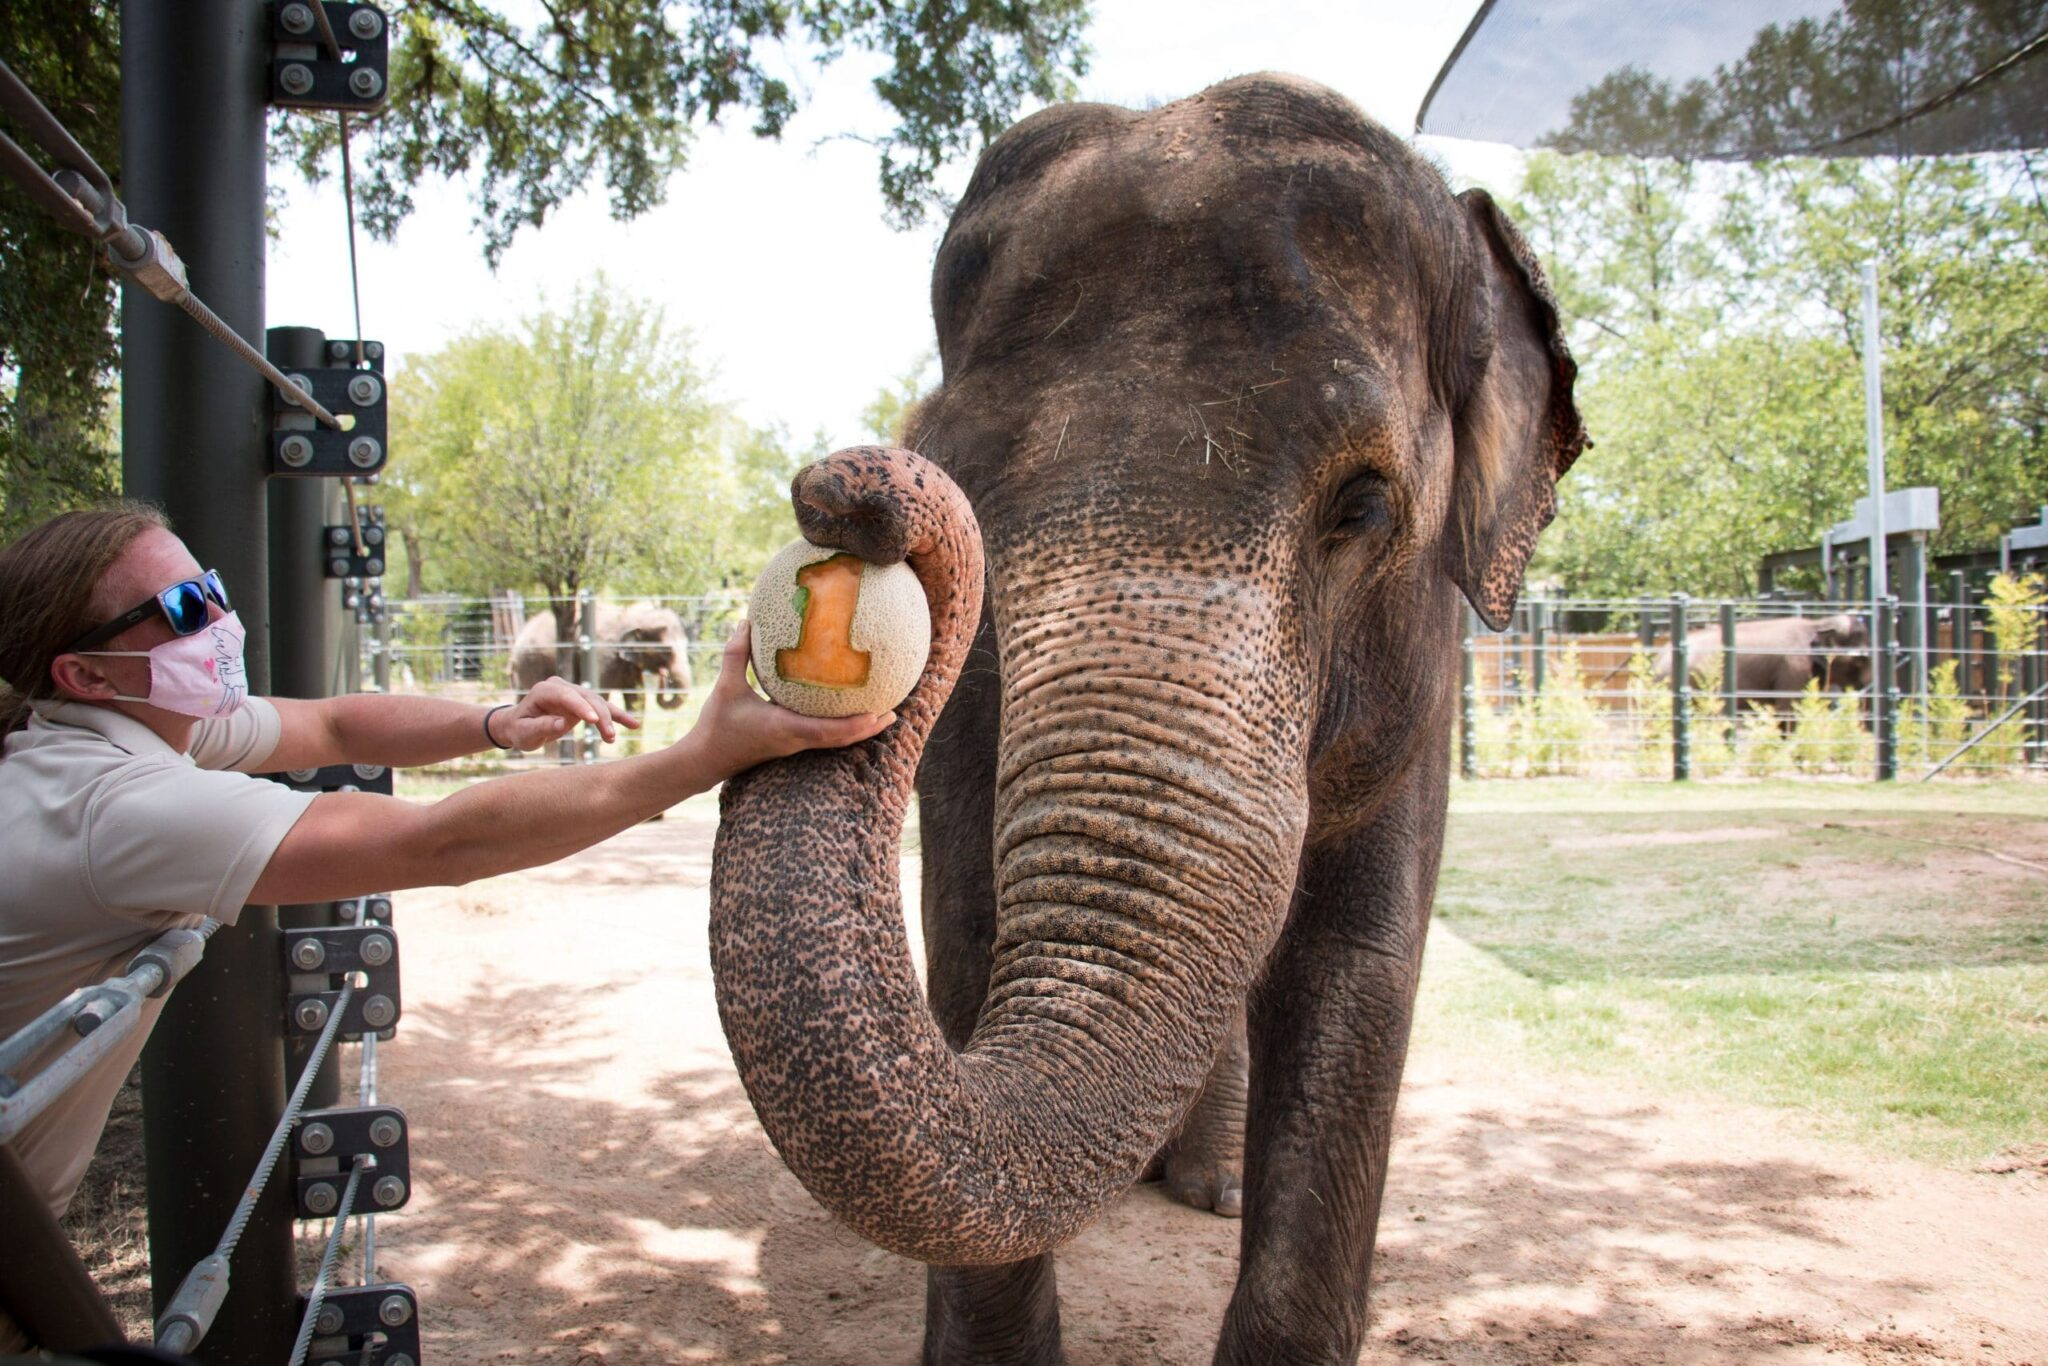 This just in: Fort Worth Zoo No. 1! (But we knew that, didn't we?)